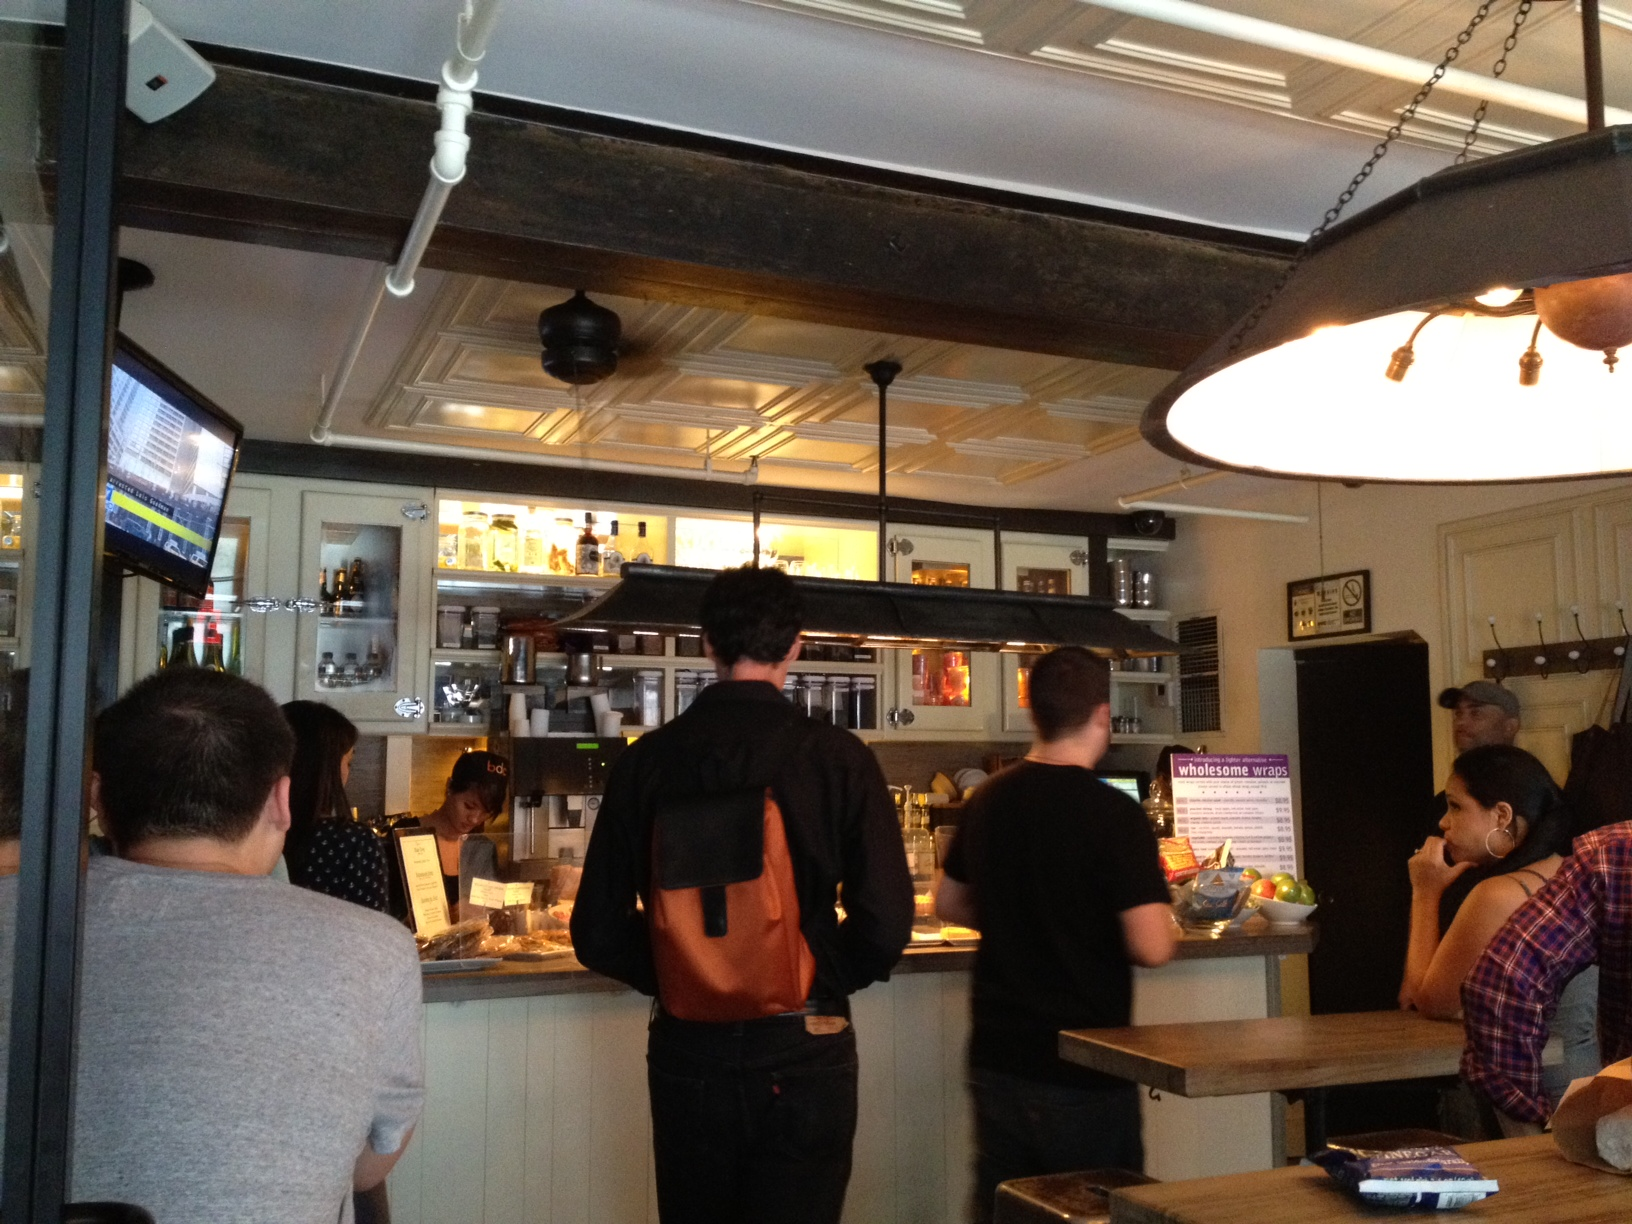 Flatiron Lunch Blue Dog has Big Options and Flavors in a Tiny